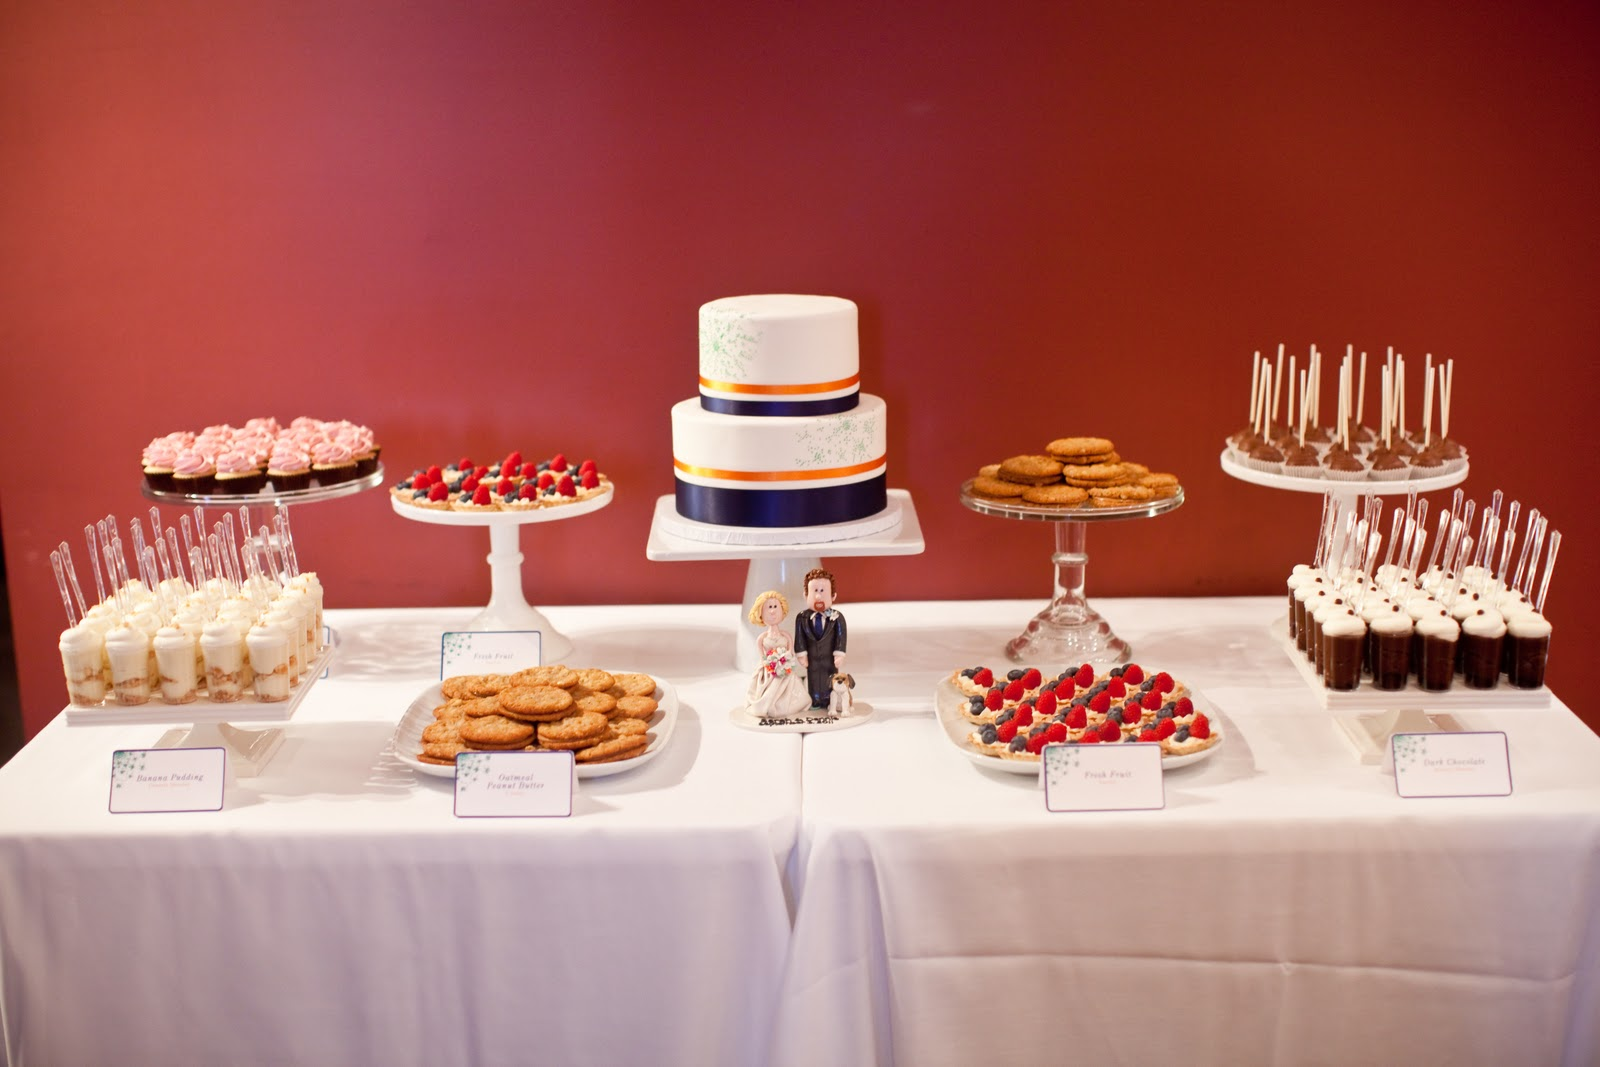 cocoa fig minneapolis wedding cake and dessert table sarah and dennis. Black Bedroom Furniture Sets. Home Design Ideas